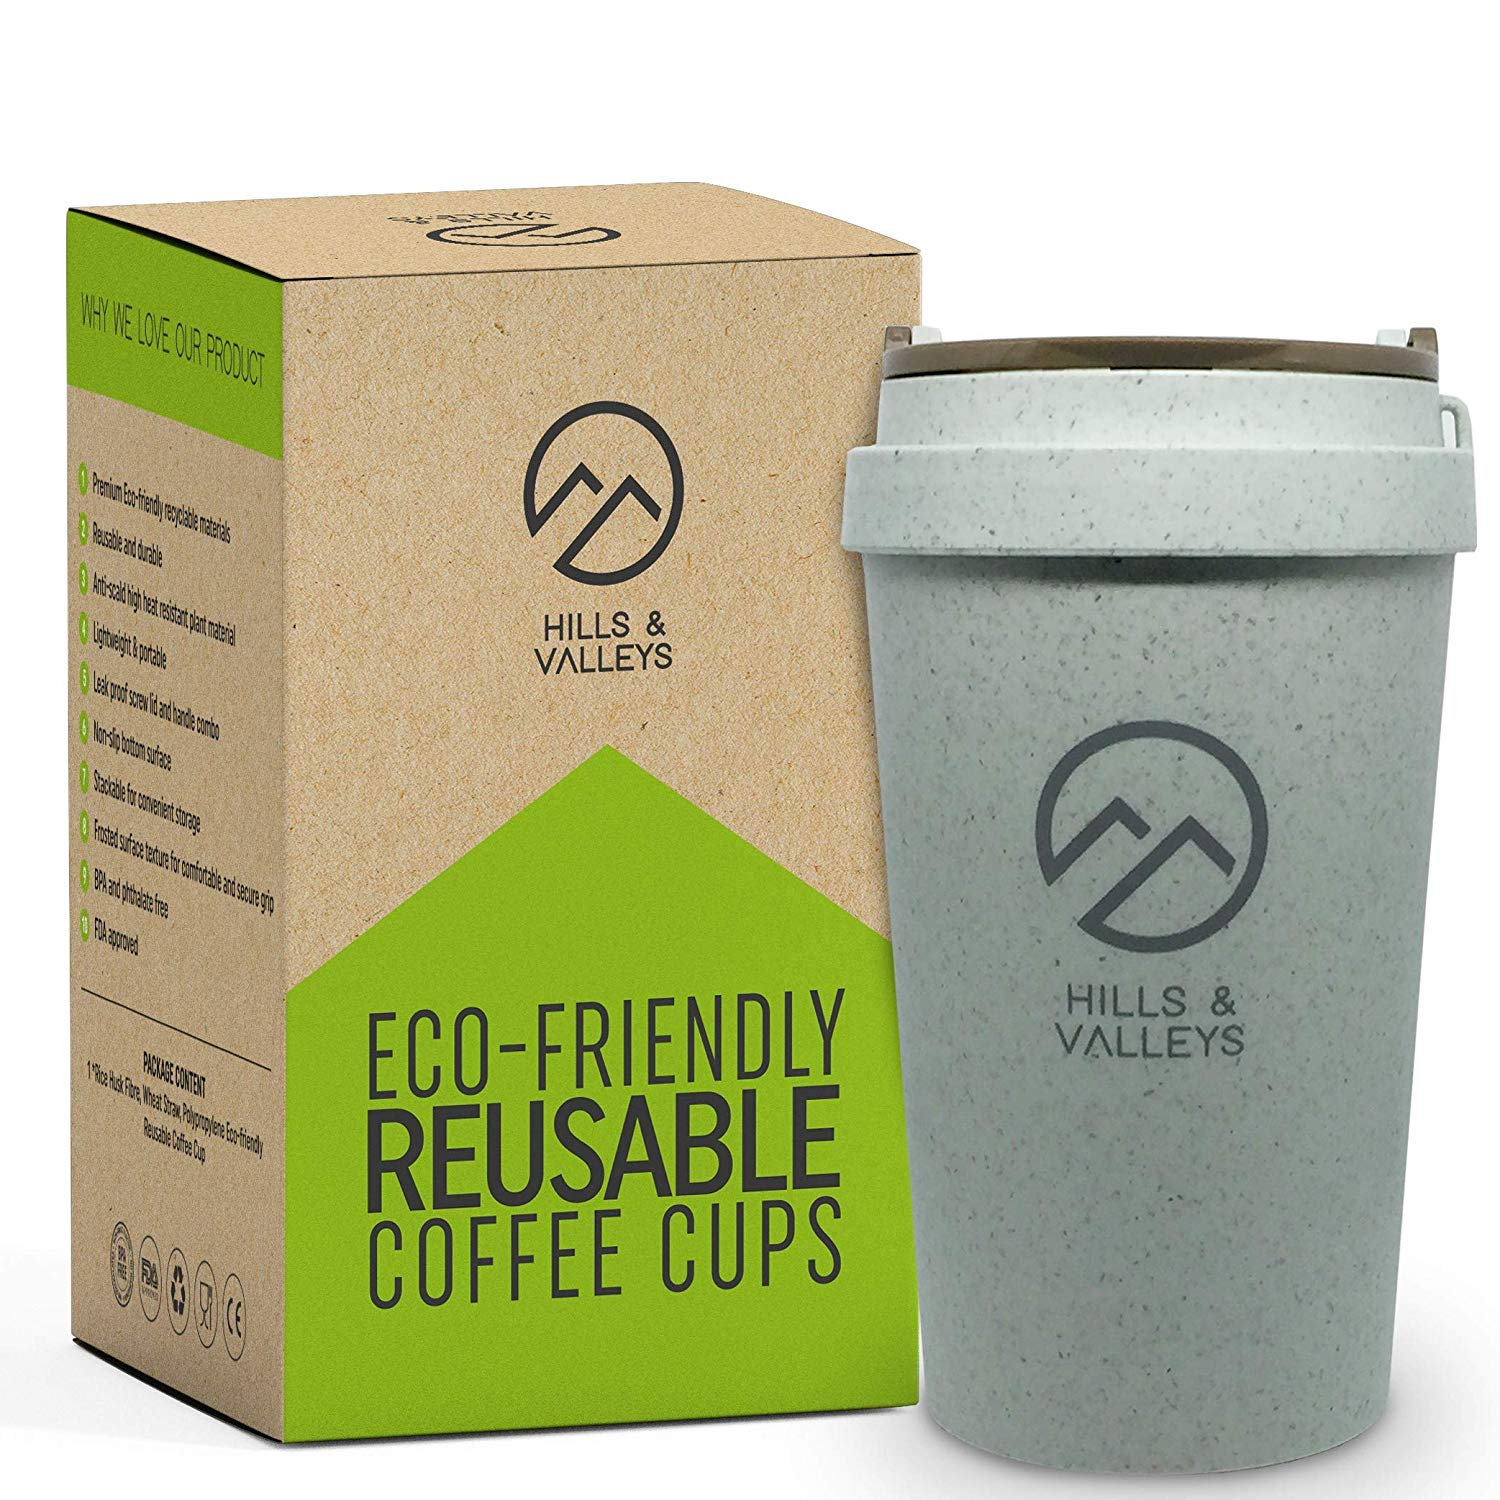 Eco-Friendly Reusable Coffee Cups